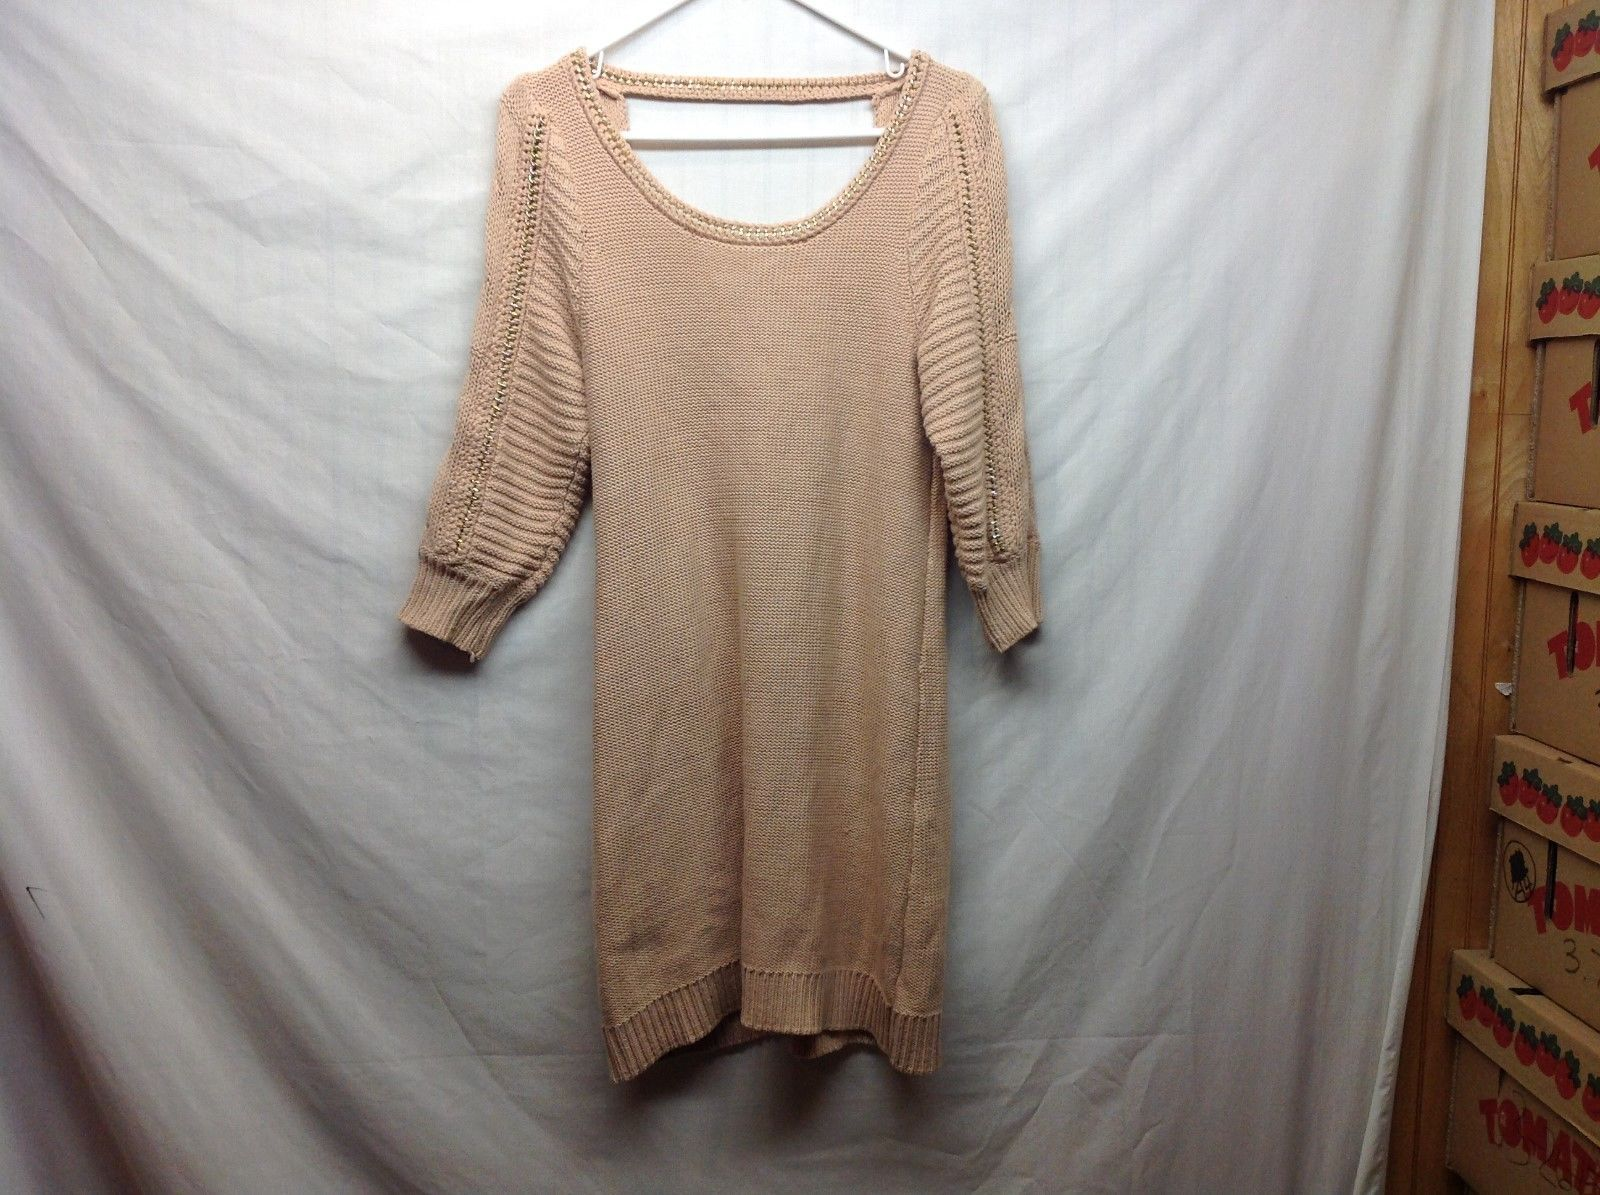 Lauren Conrad Long Peach Colored Low Scoop Back Knit Sweater Sz M